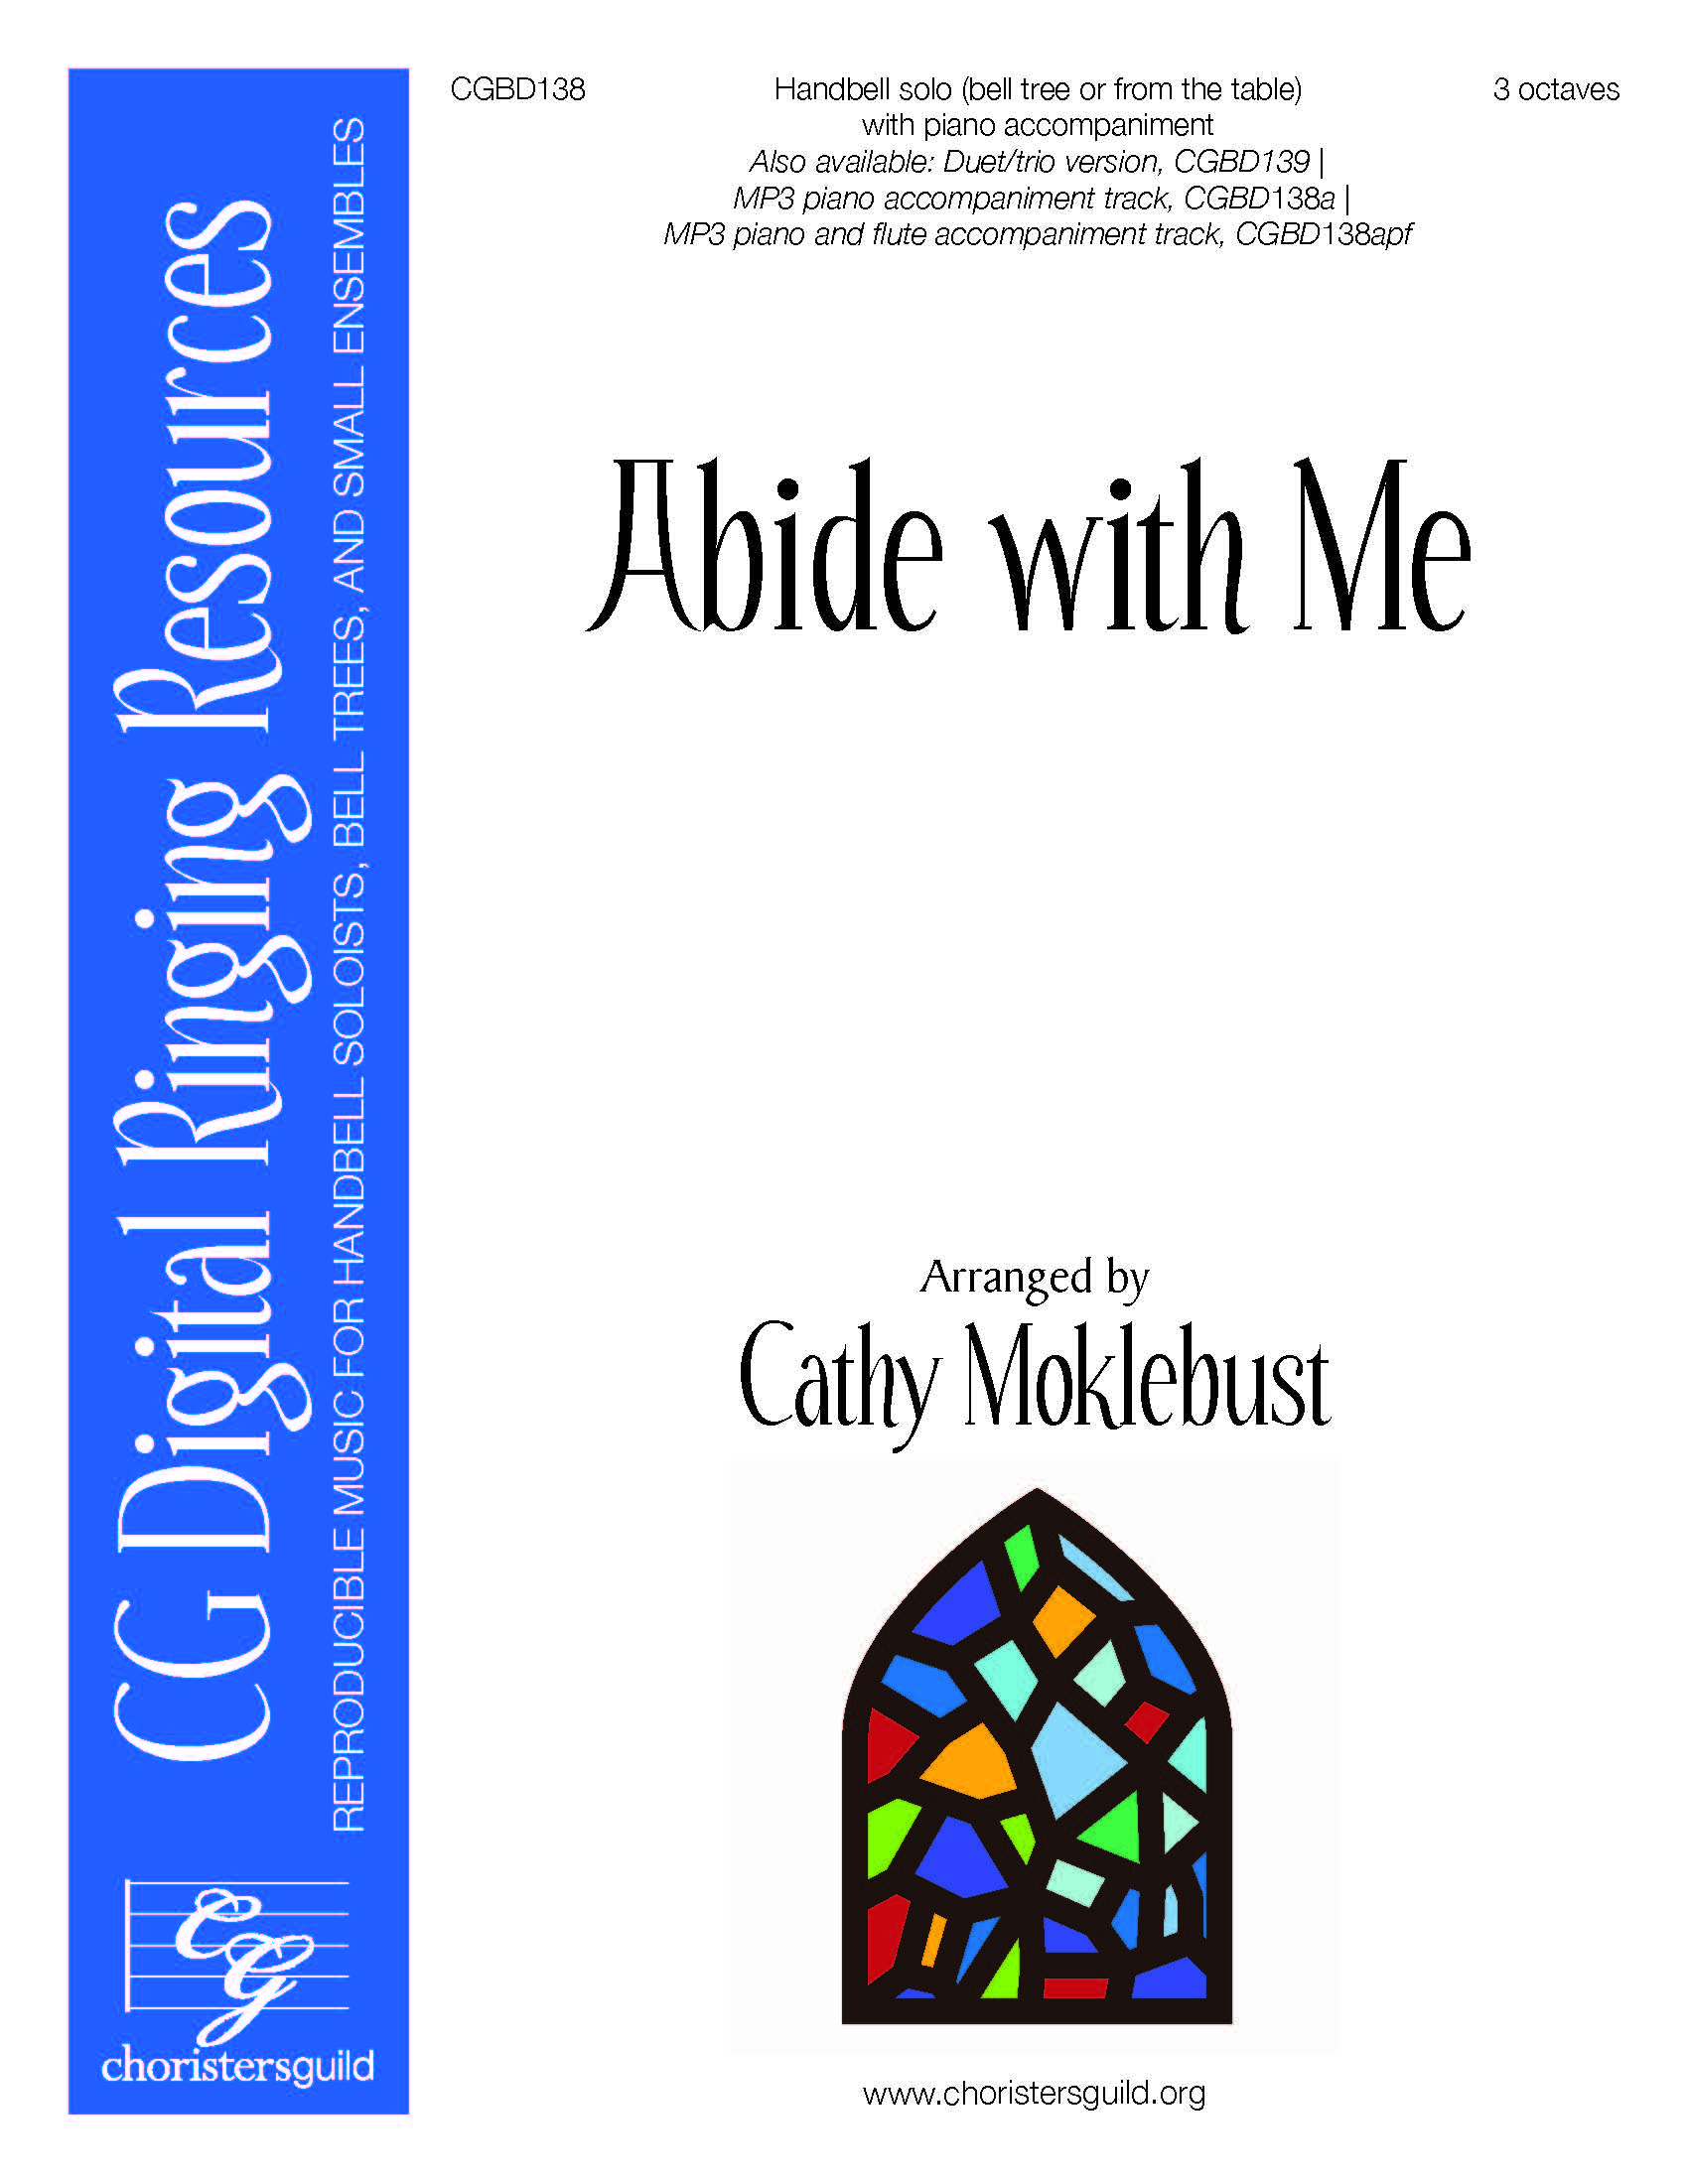 Abide with Me - Digital Piano and Flute Accompaniment Track